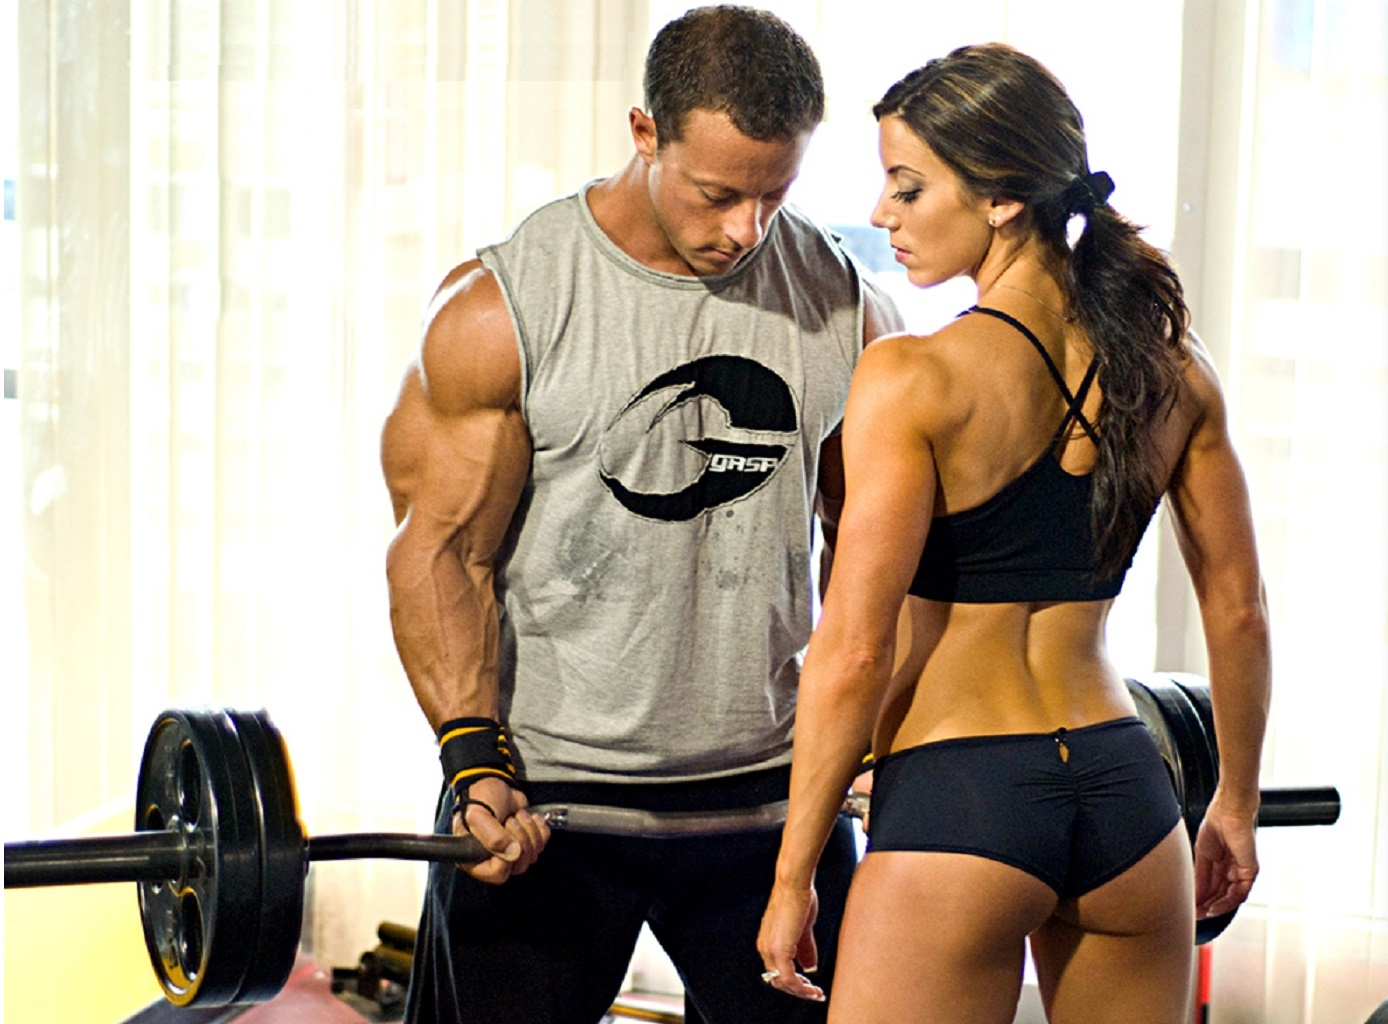 Clenbuterol is available online